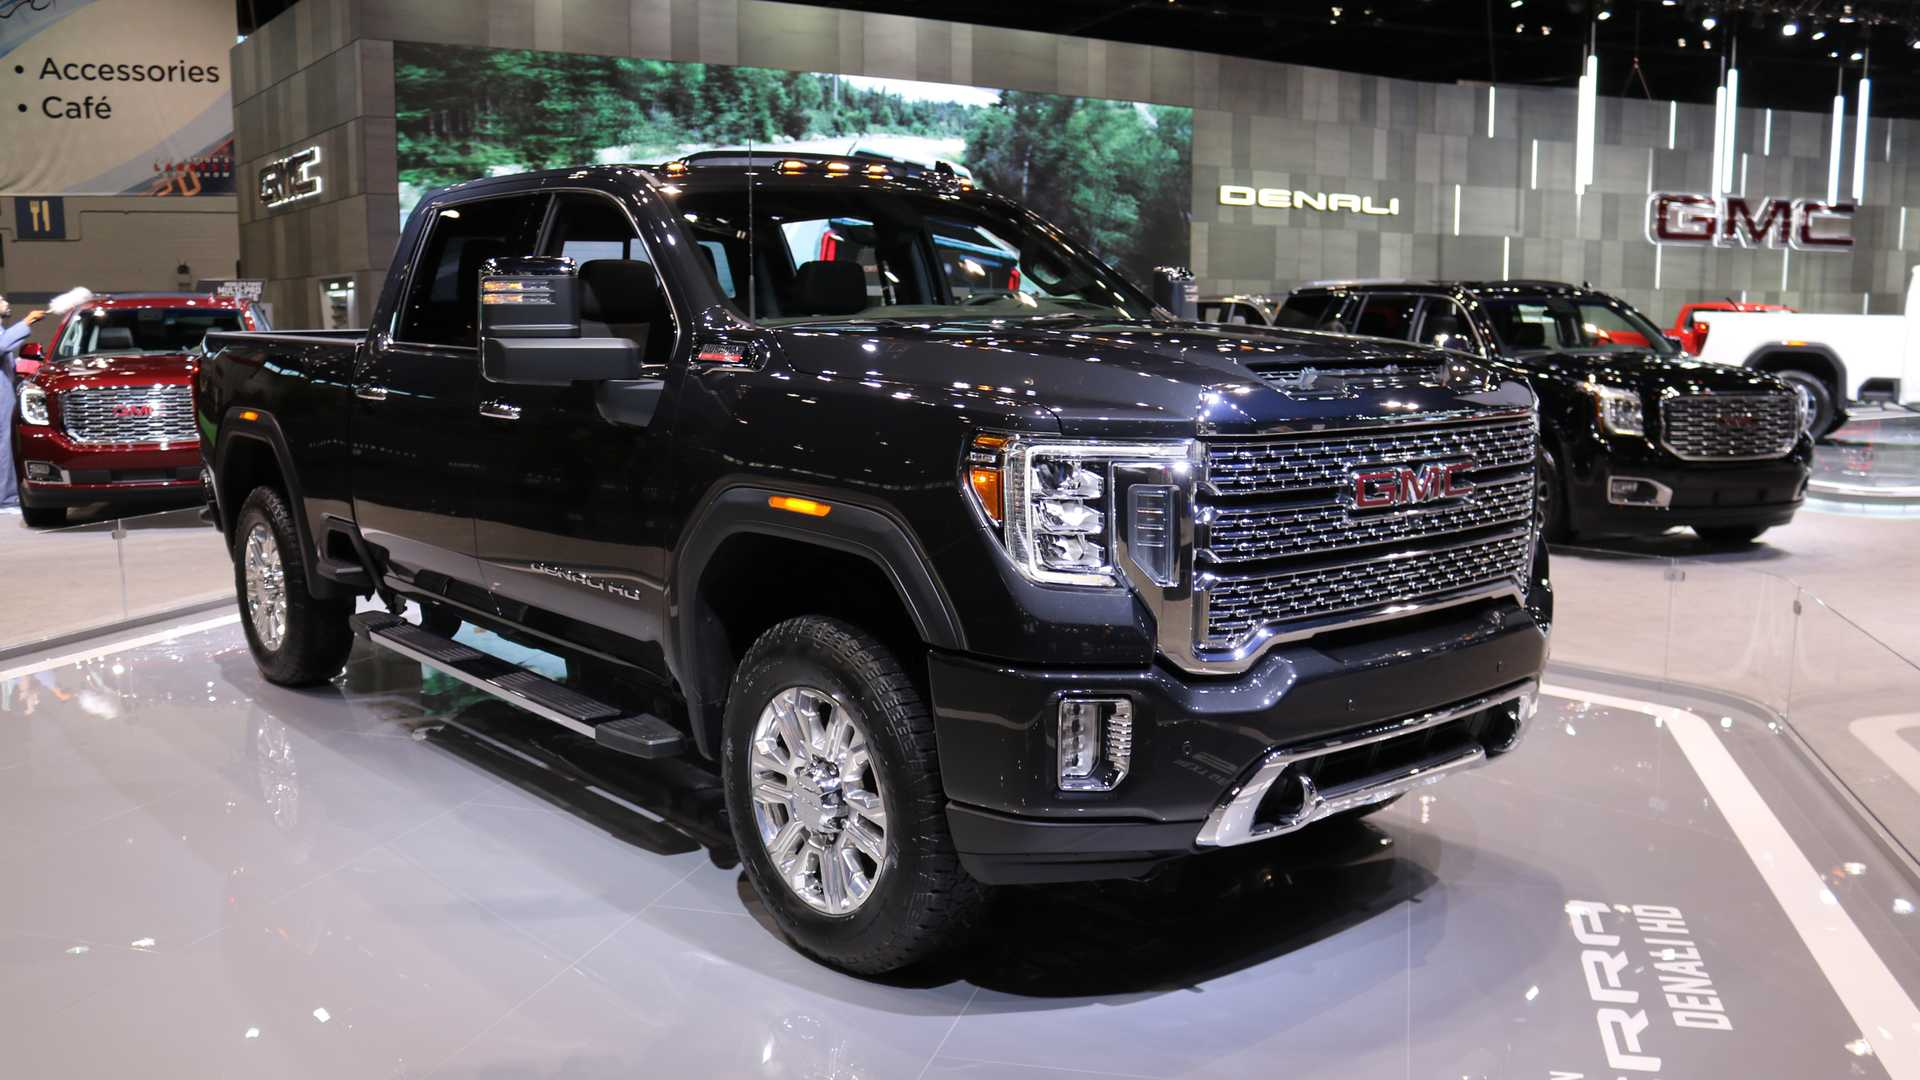 73 New 2020 Gmc 2500 Launch Date Images for 2020 Gmc 2500 Launch Date